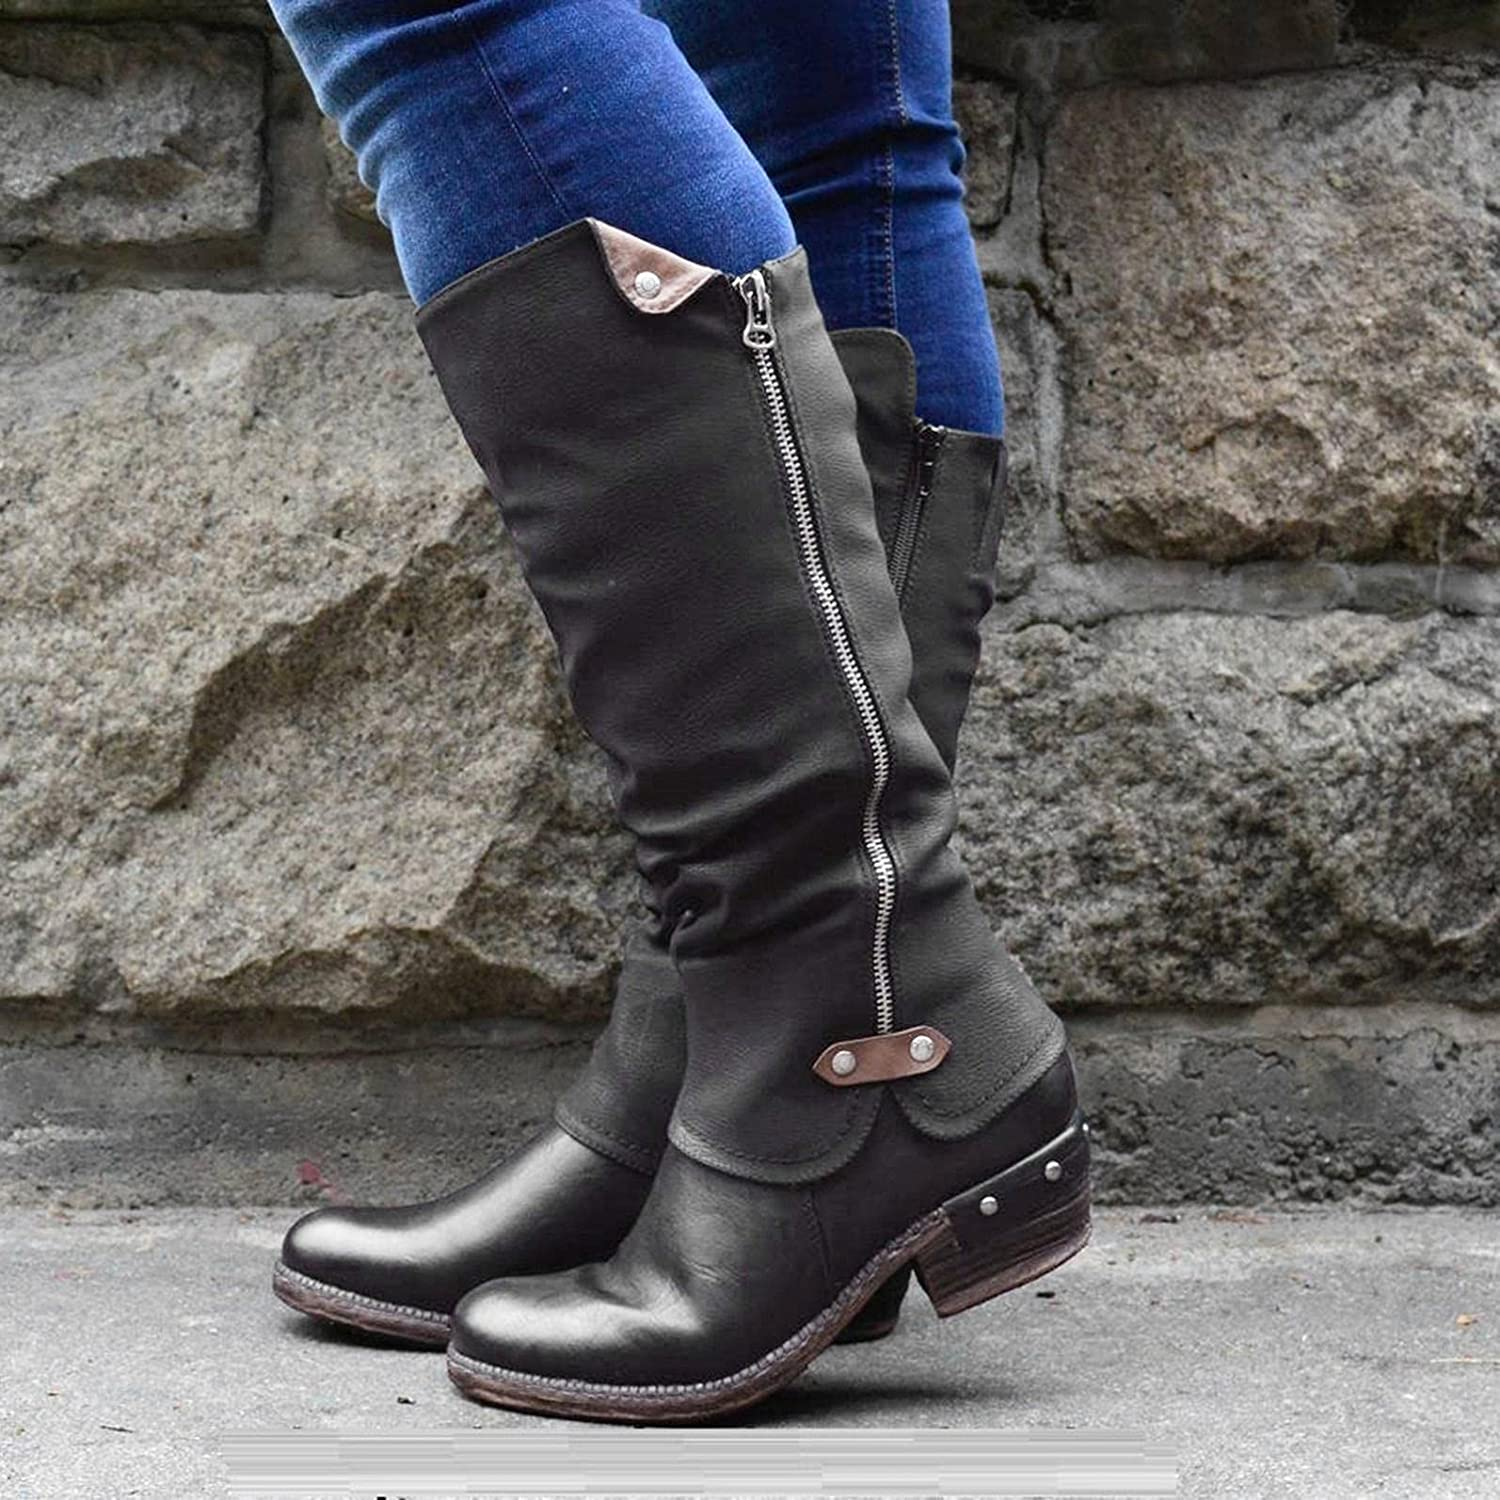 Boots for Women with Heel Vintage Buckle Strap Knee High Boots Side Zip Platform Boots Casual Warm Snow Winter Boots Womens